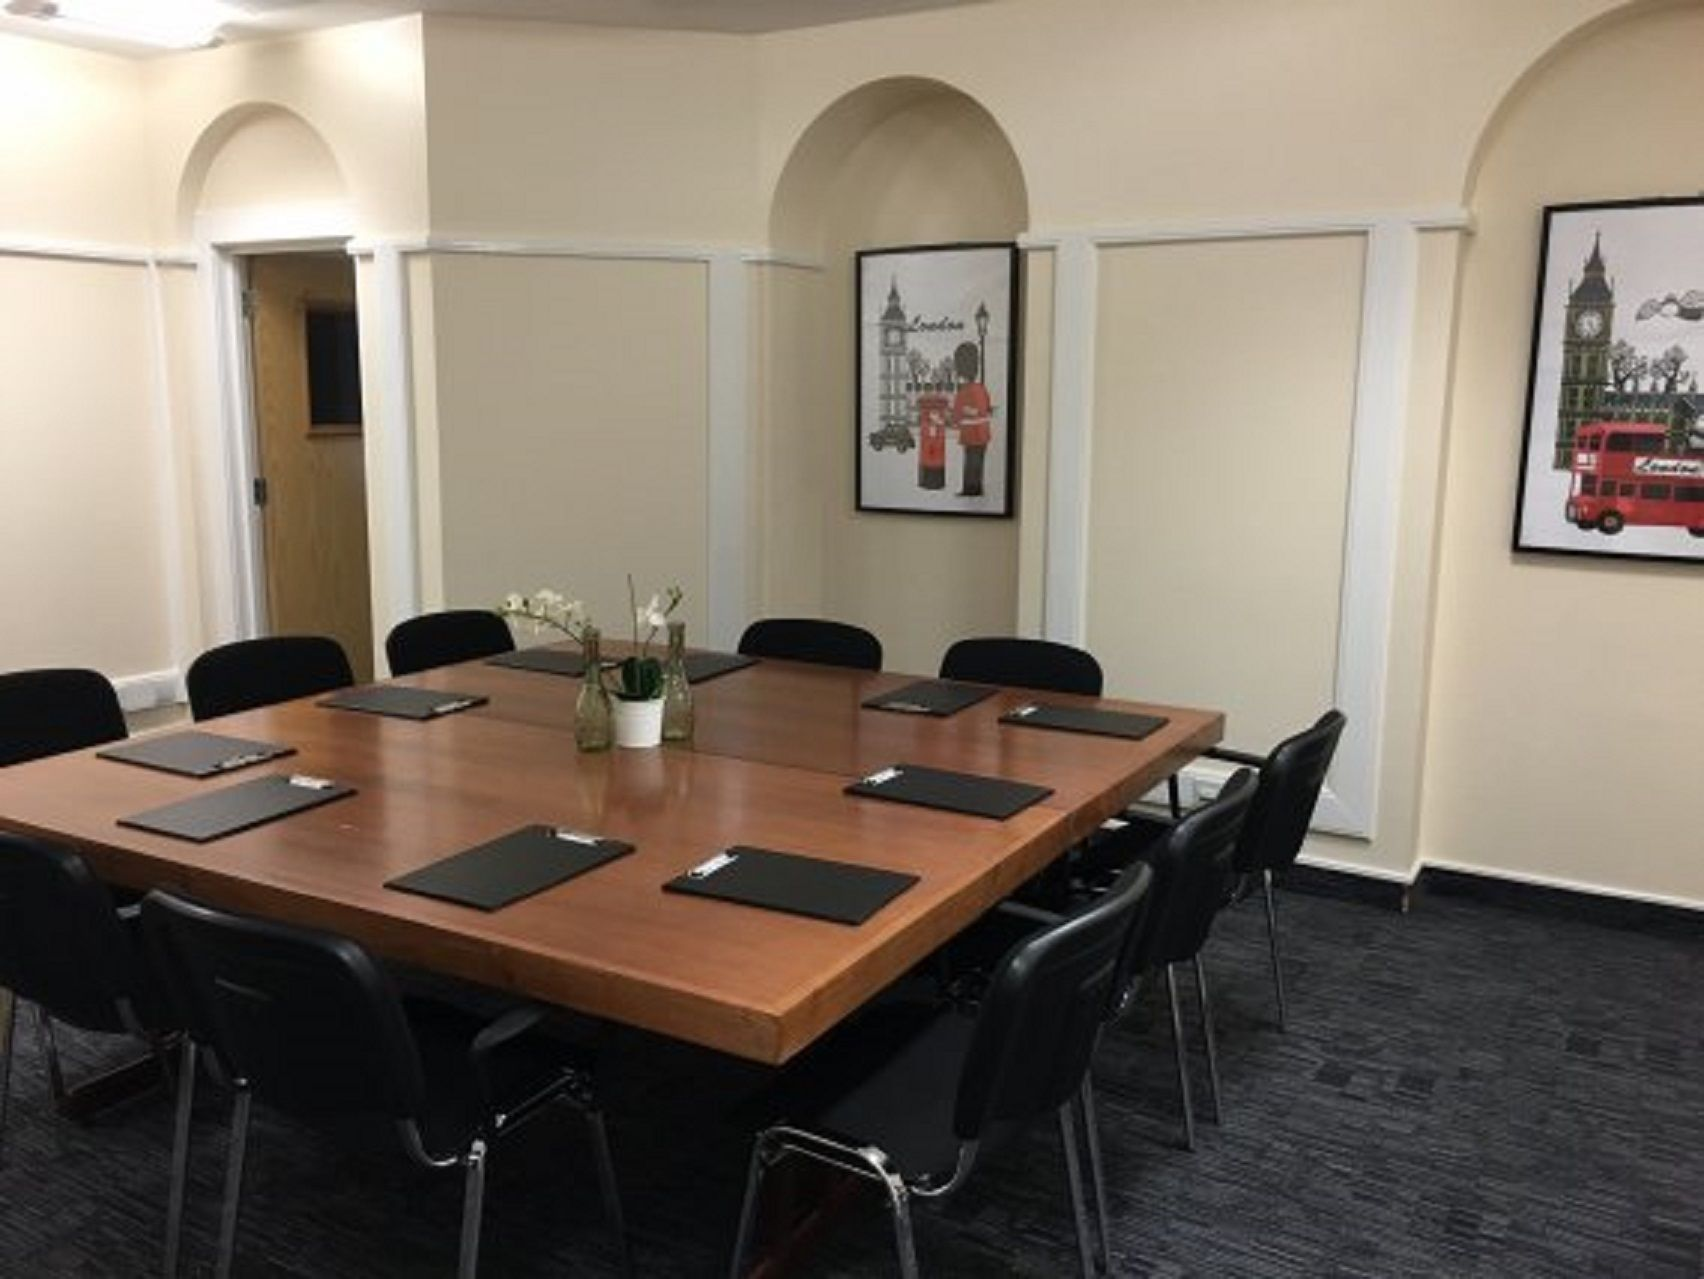 Perfectly located and generously proportioned, GCCS- The London Room